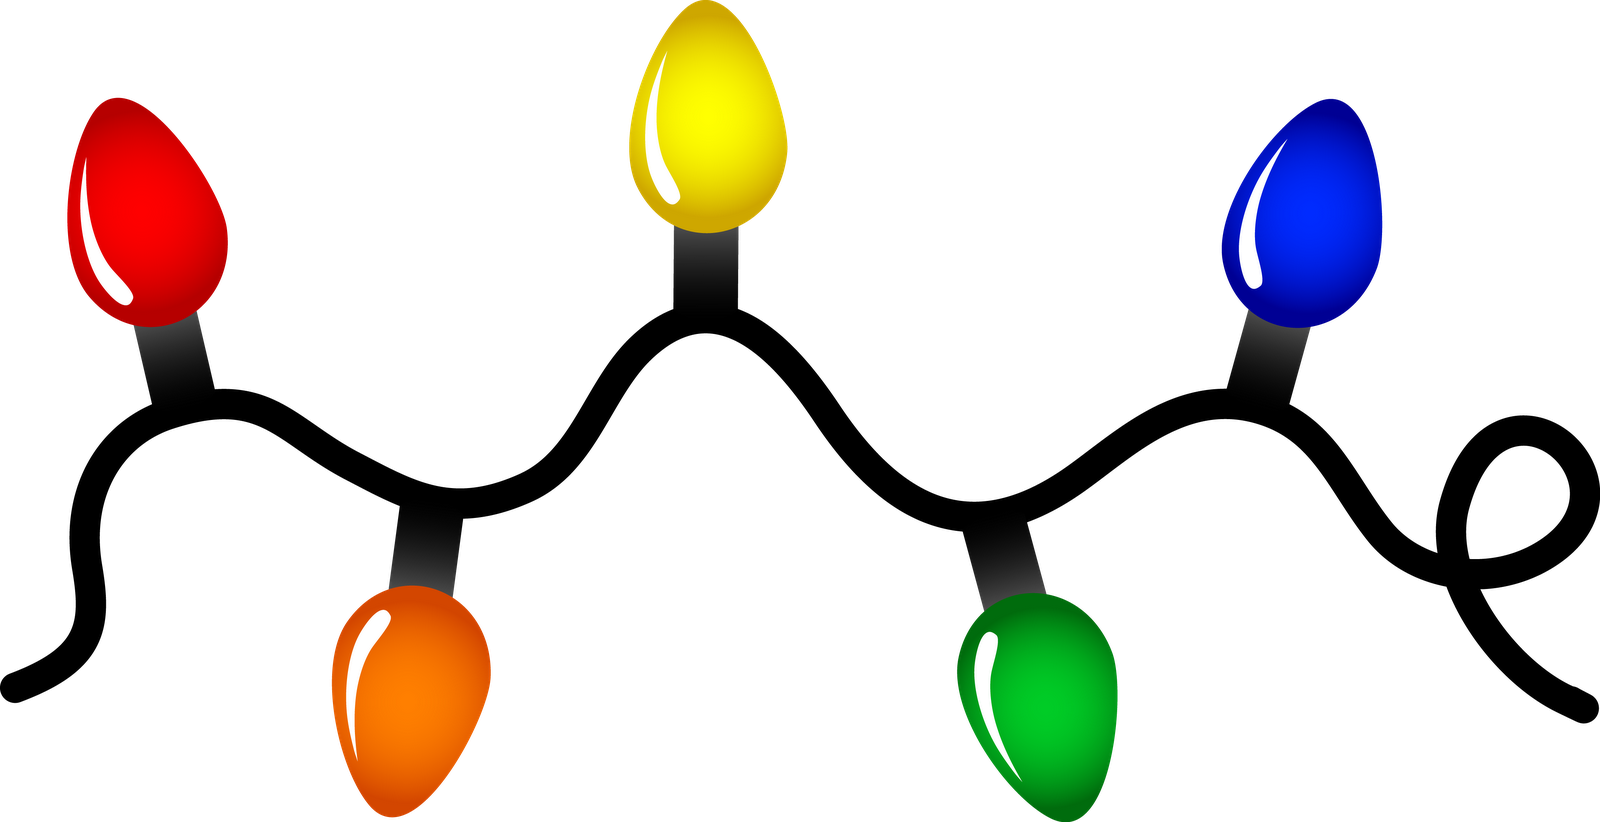 png freeuse stock Lights clipart bold.  collection of free.